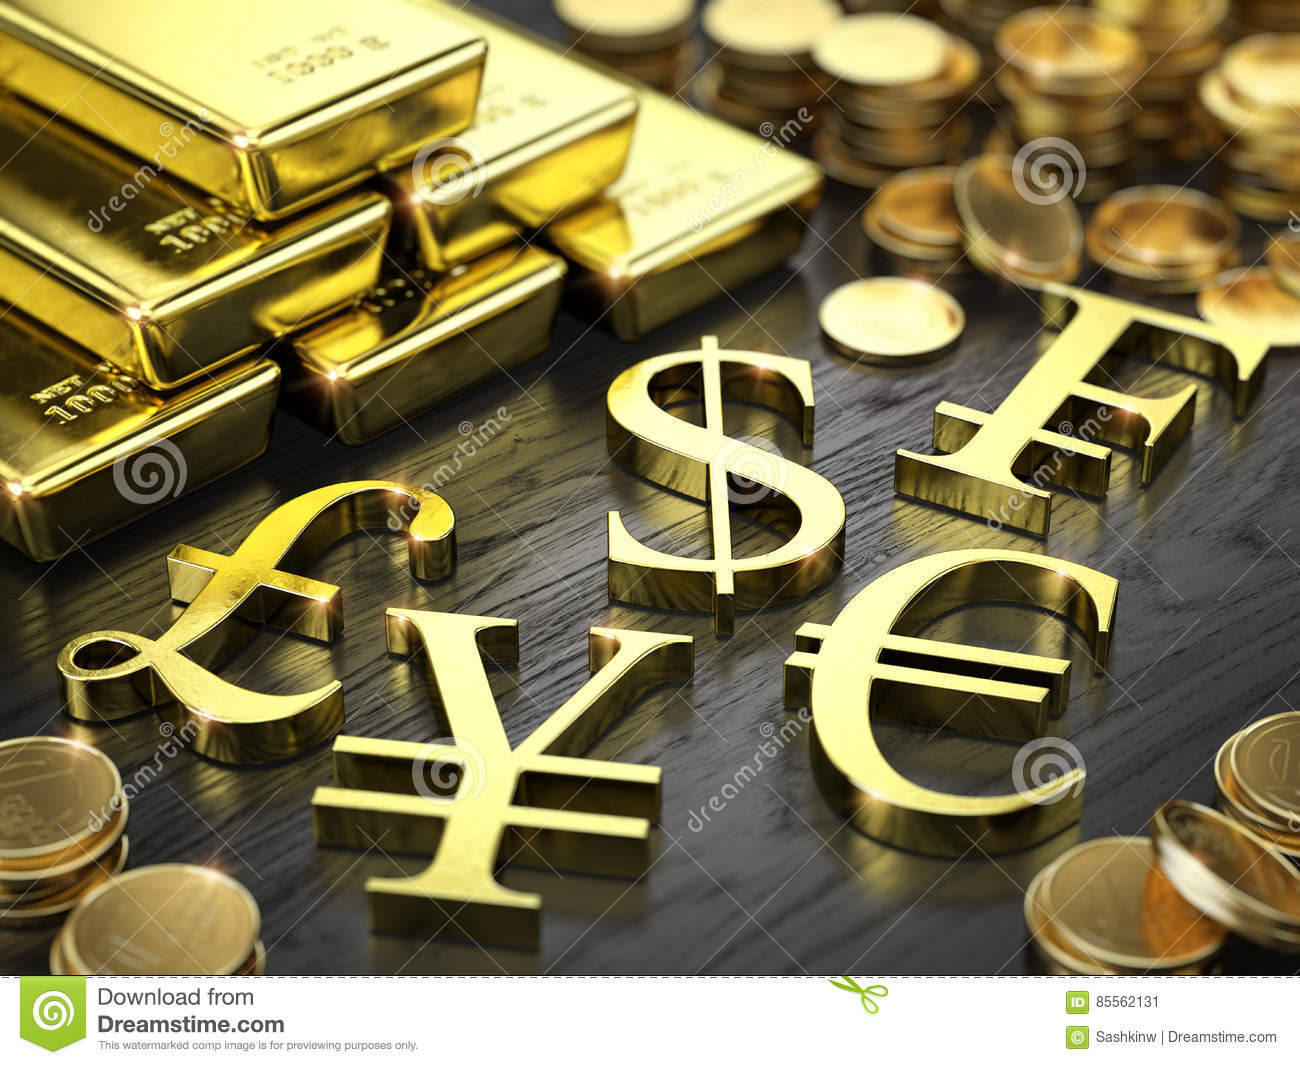 Related news about gold in Saudi Arabi